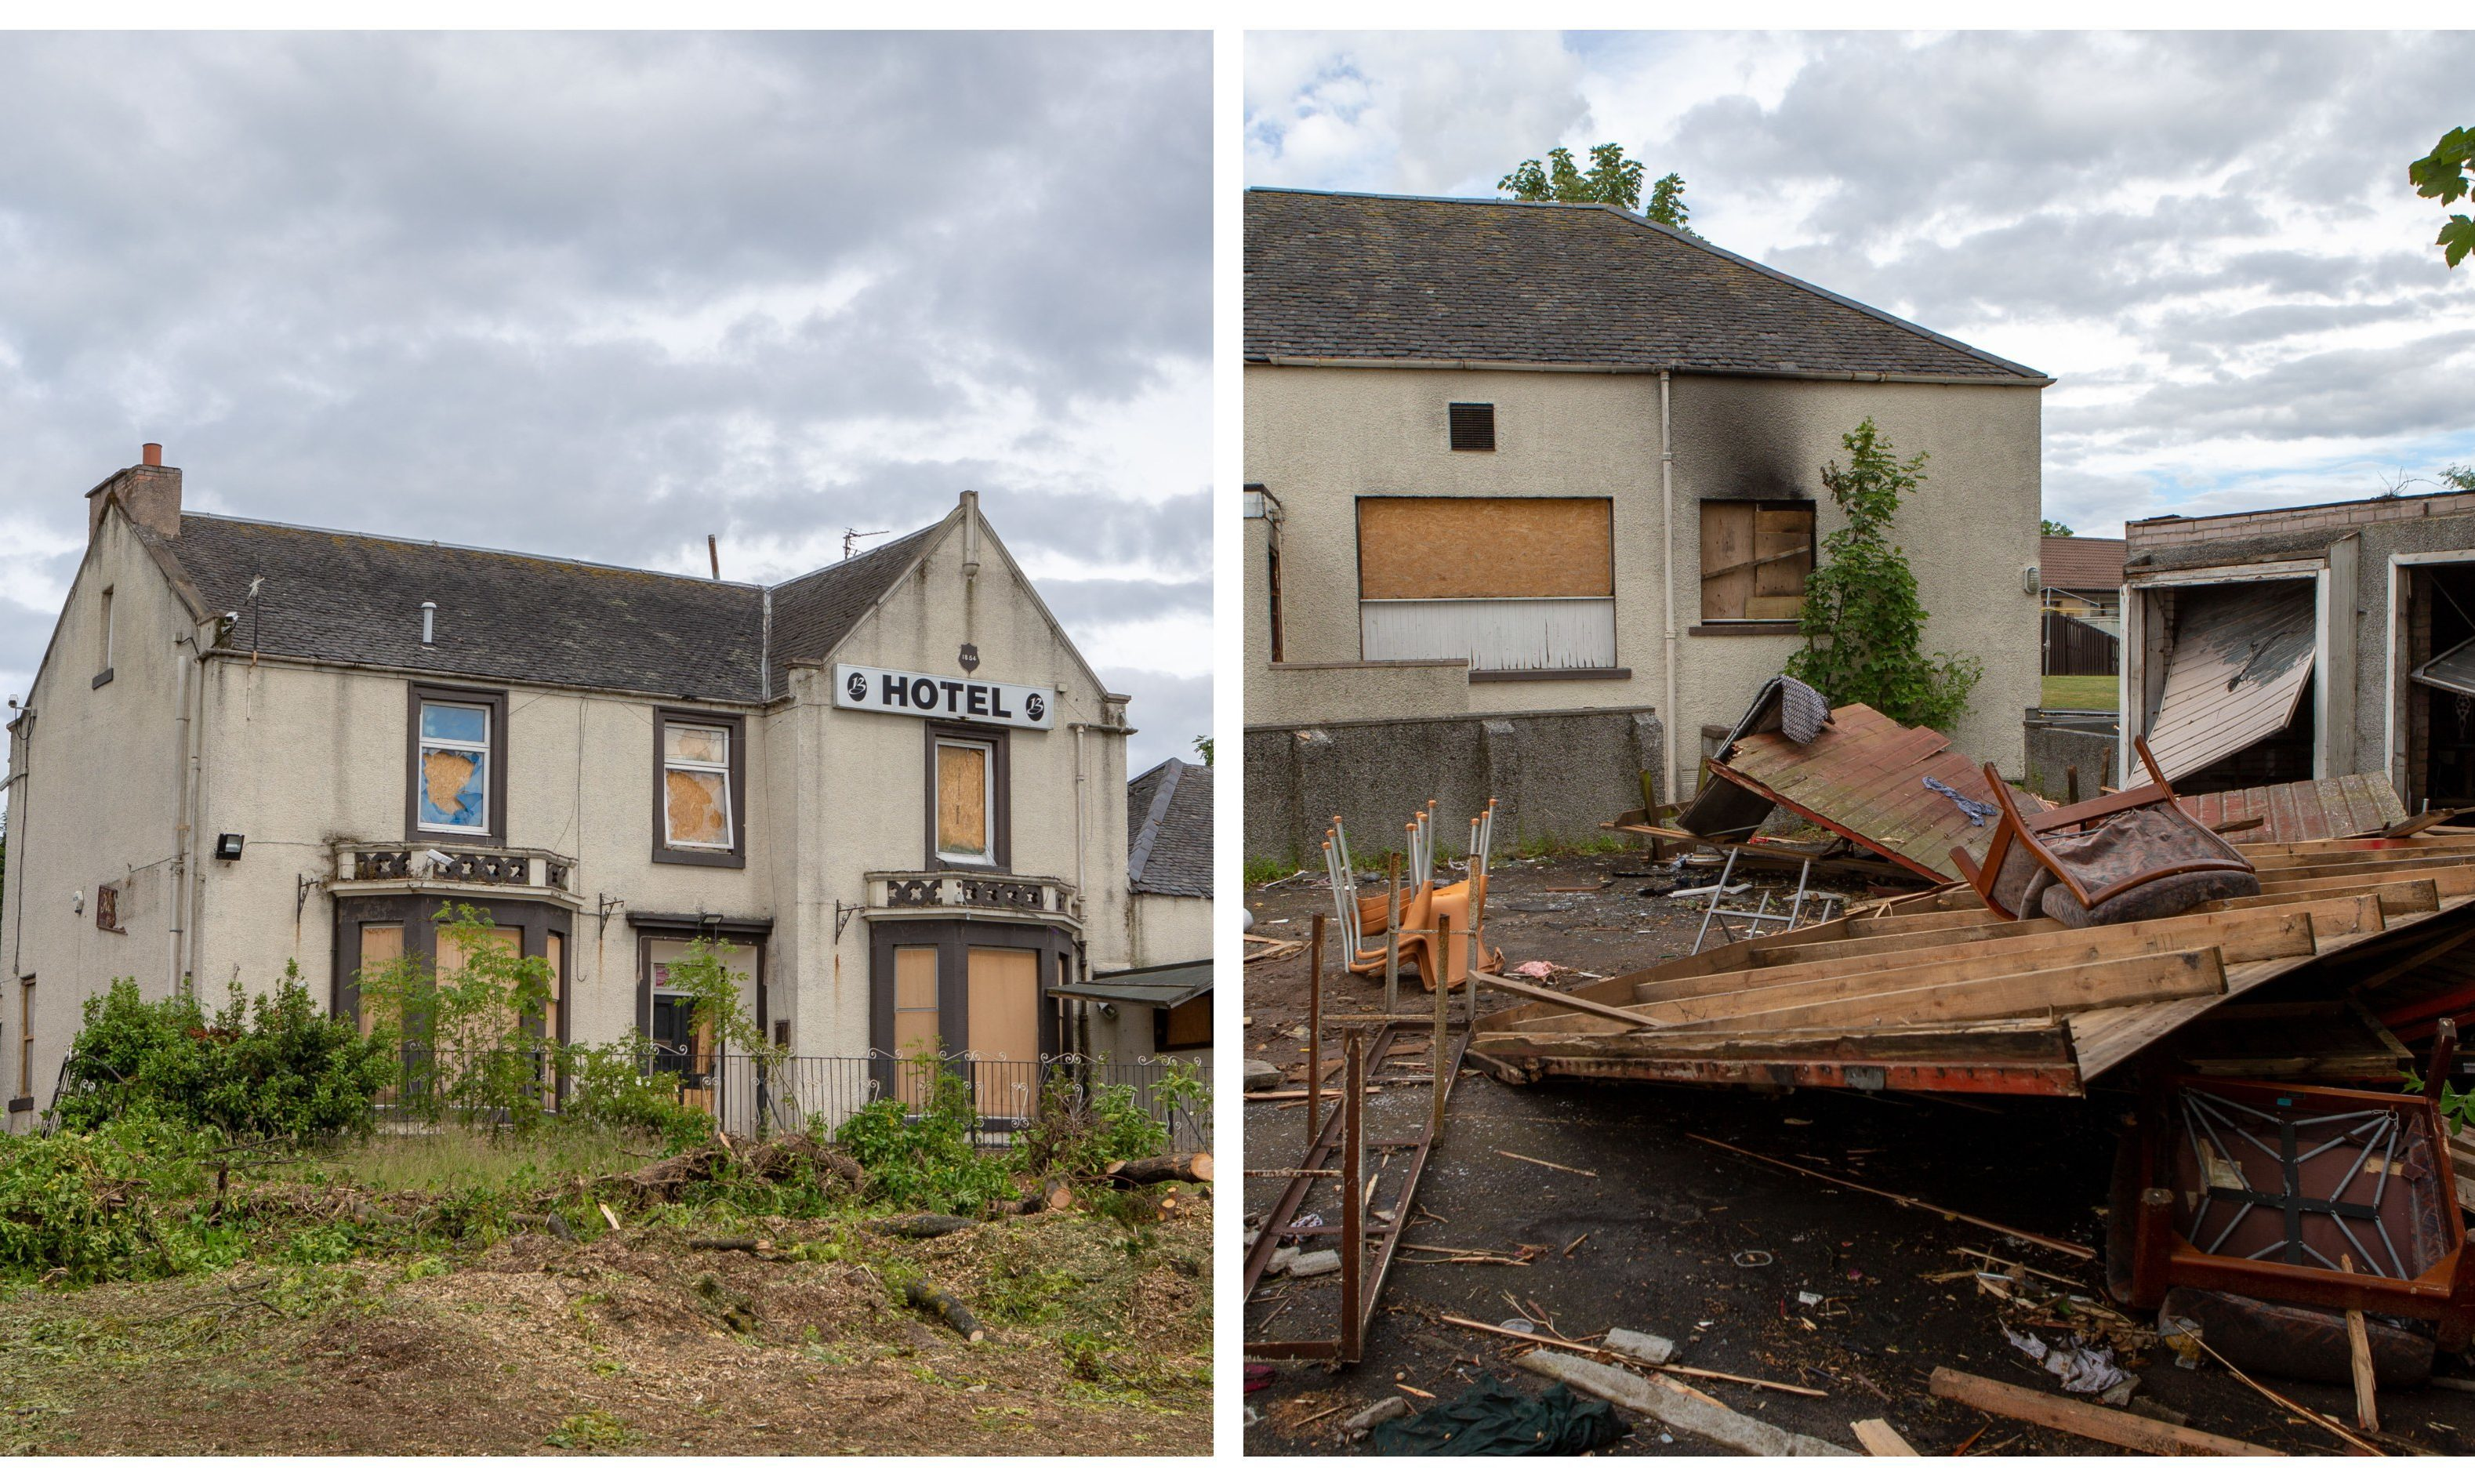 Photos show the state of Brannigans Hotel, Leven.